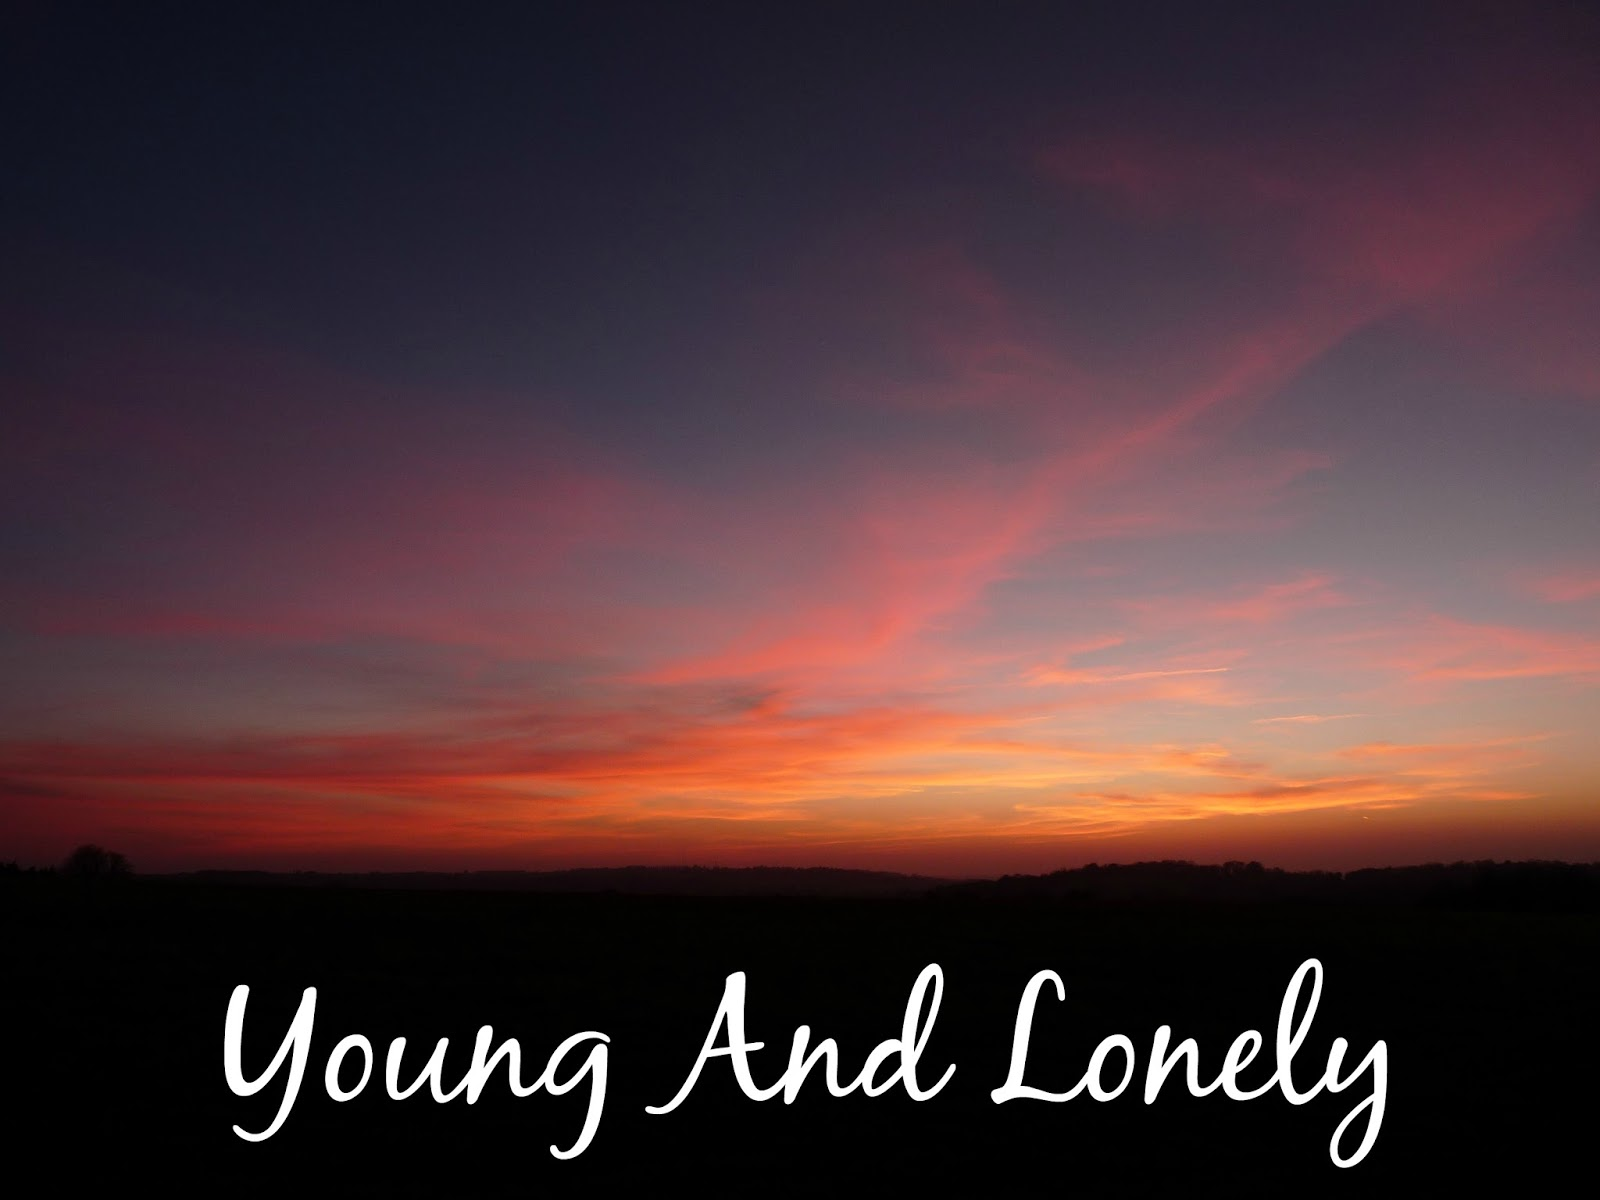 Young And Lonely | #SpeakUp loneliness teenagers social media bloggers lifestyle UK